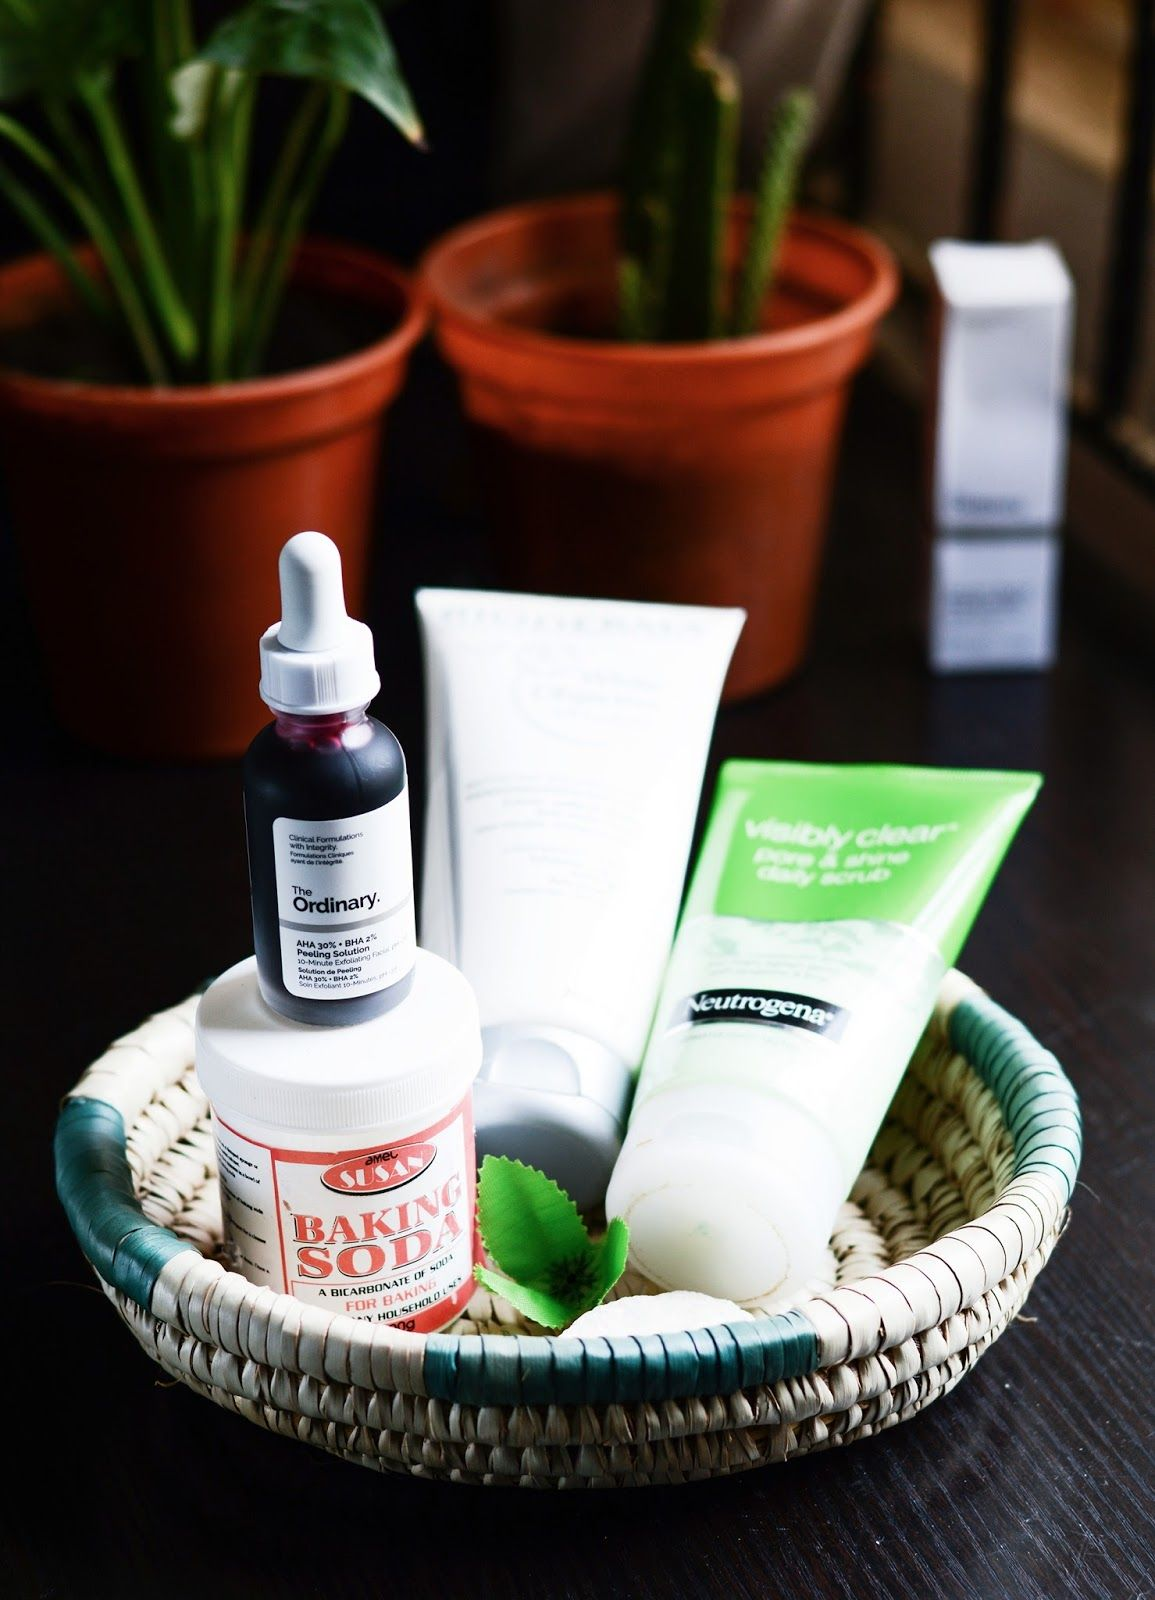 Skin Care Products & Regimen For Oily/Acne Prone skin